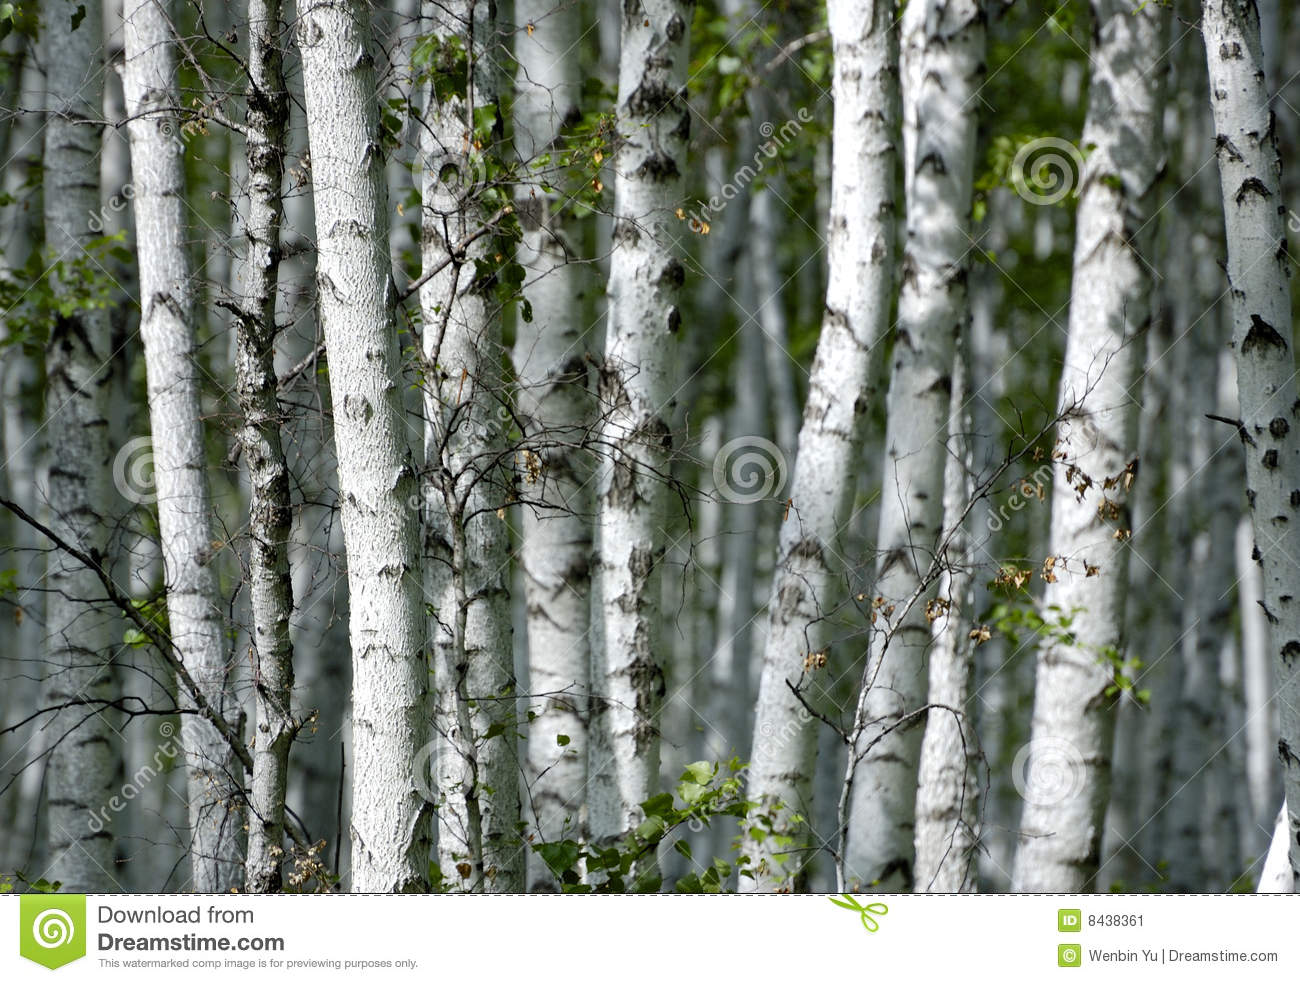 Summer growth in the forest with the beautiful birch forest